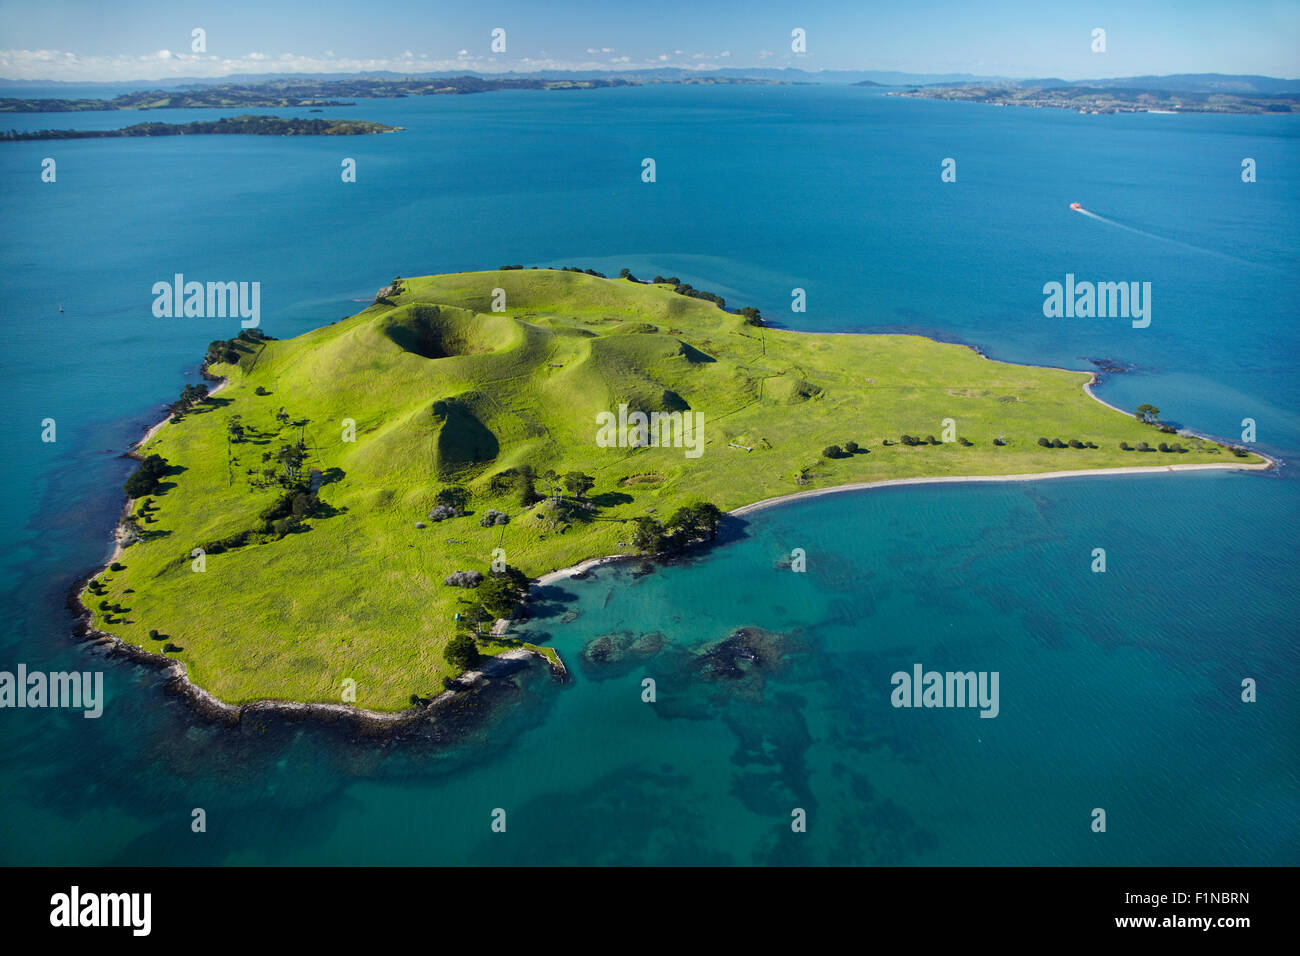 Volcanic craters on Browns Island, or Motukorea, Hauraki Gulf, Auckland, North Island, New Zealand - aerial - Stock Image